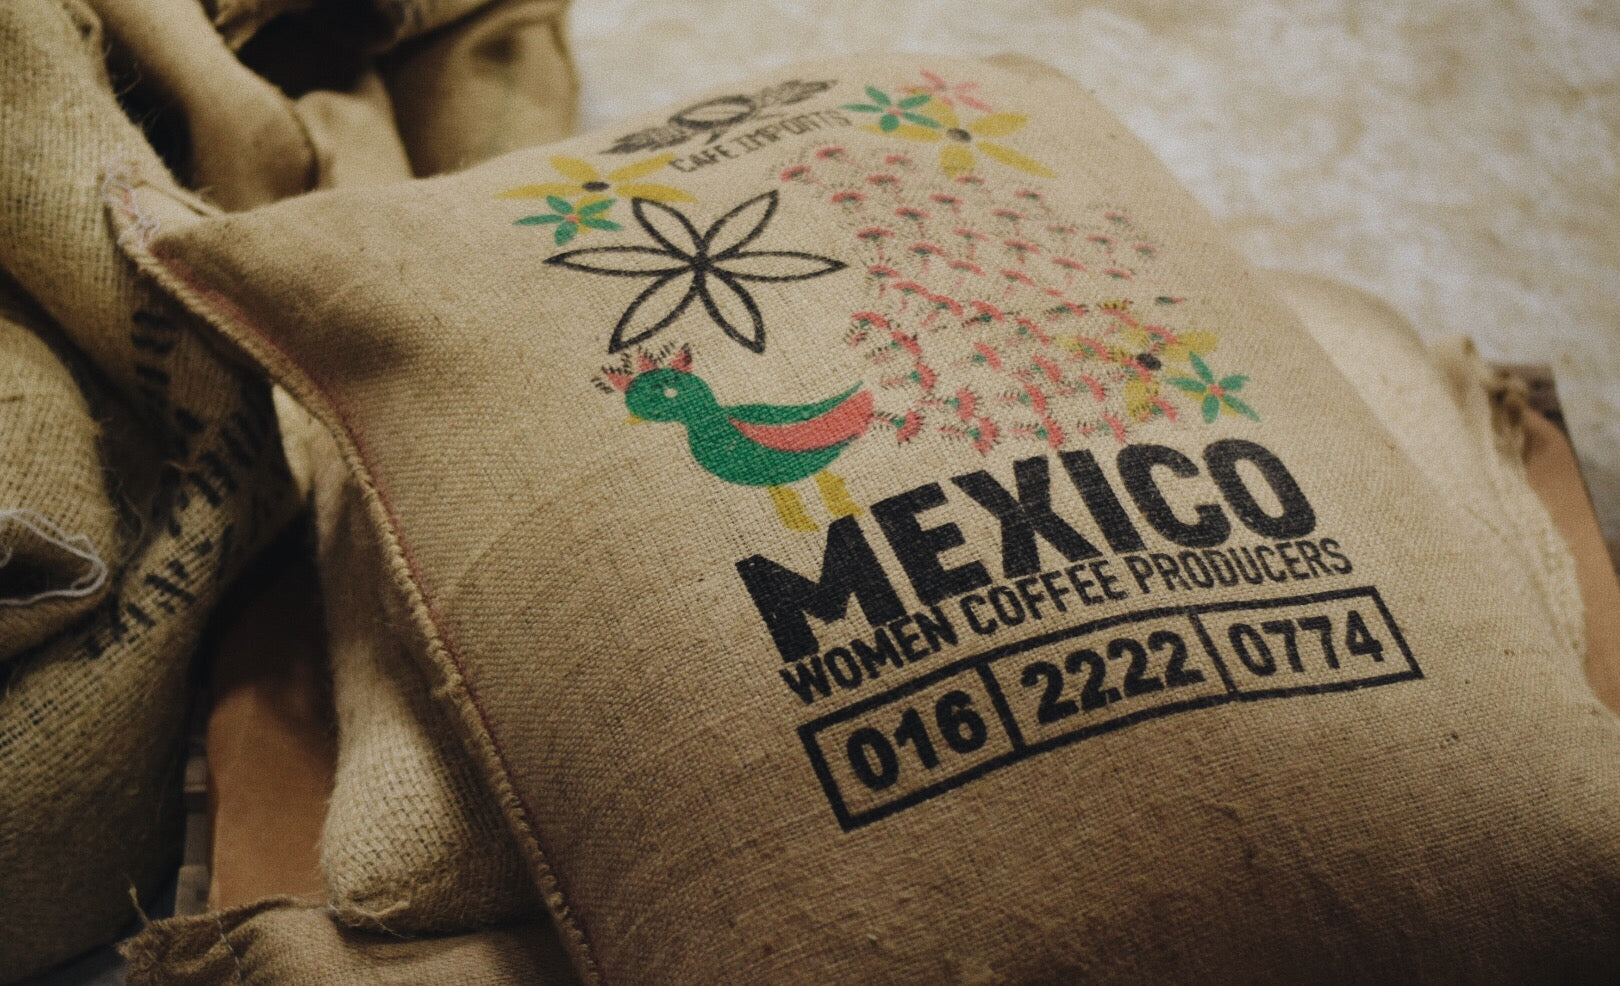 Women coffee producers bag